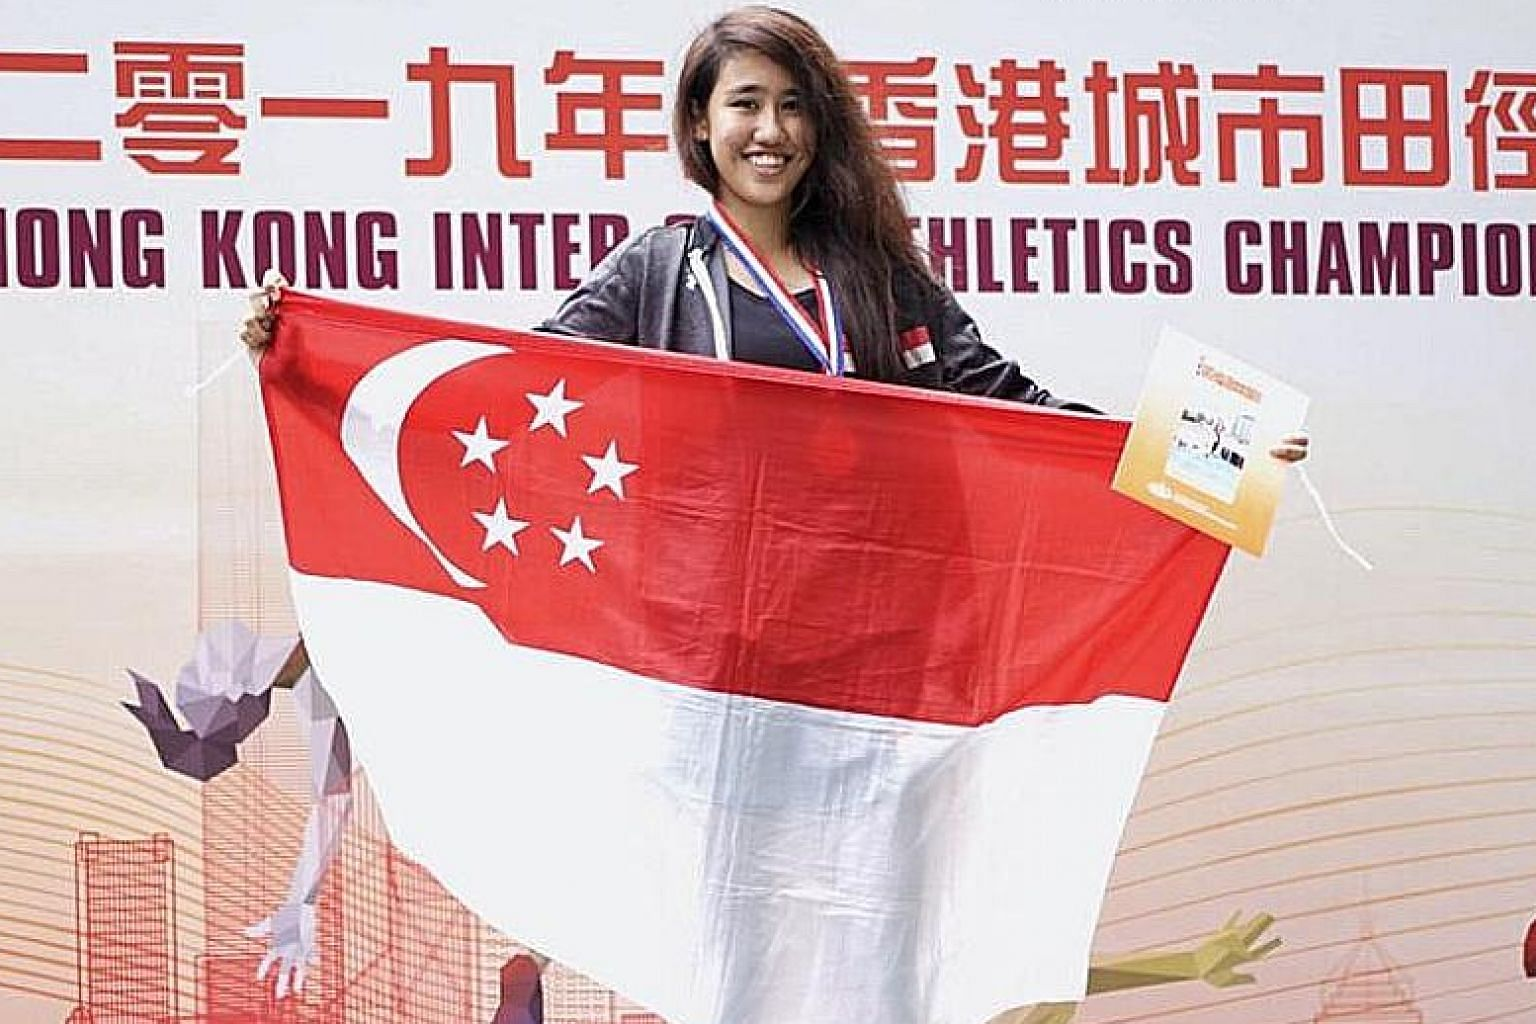 A proud Tia Louise Rozario holding the Singapore flag after she breaks the national triple jump record en route to winning the gold medal at the Hong Kong Inter-City Athletics Championships yesterday.